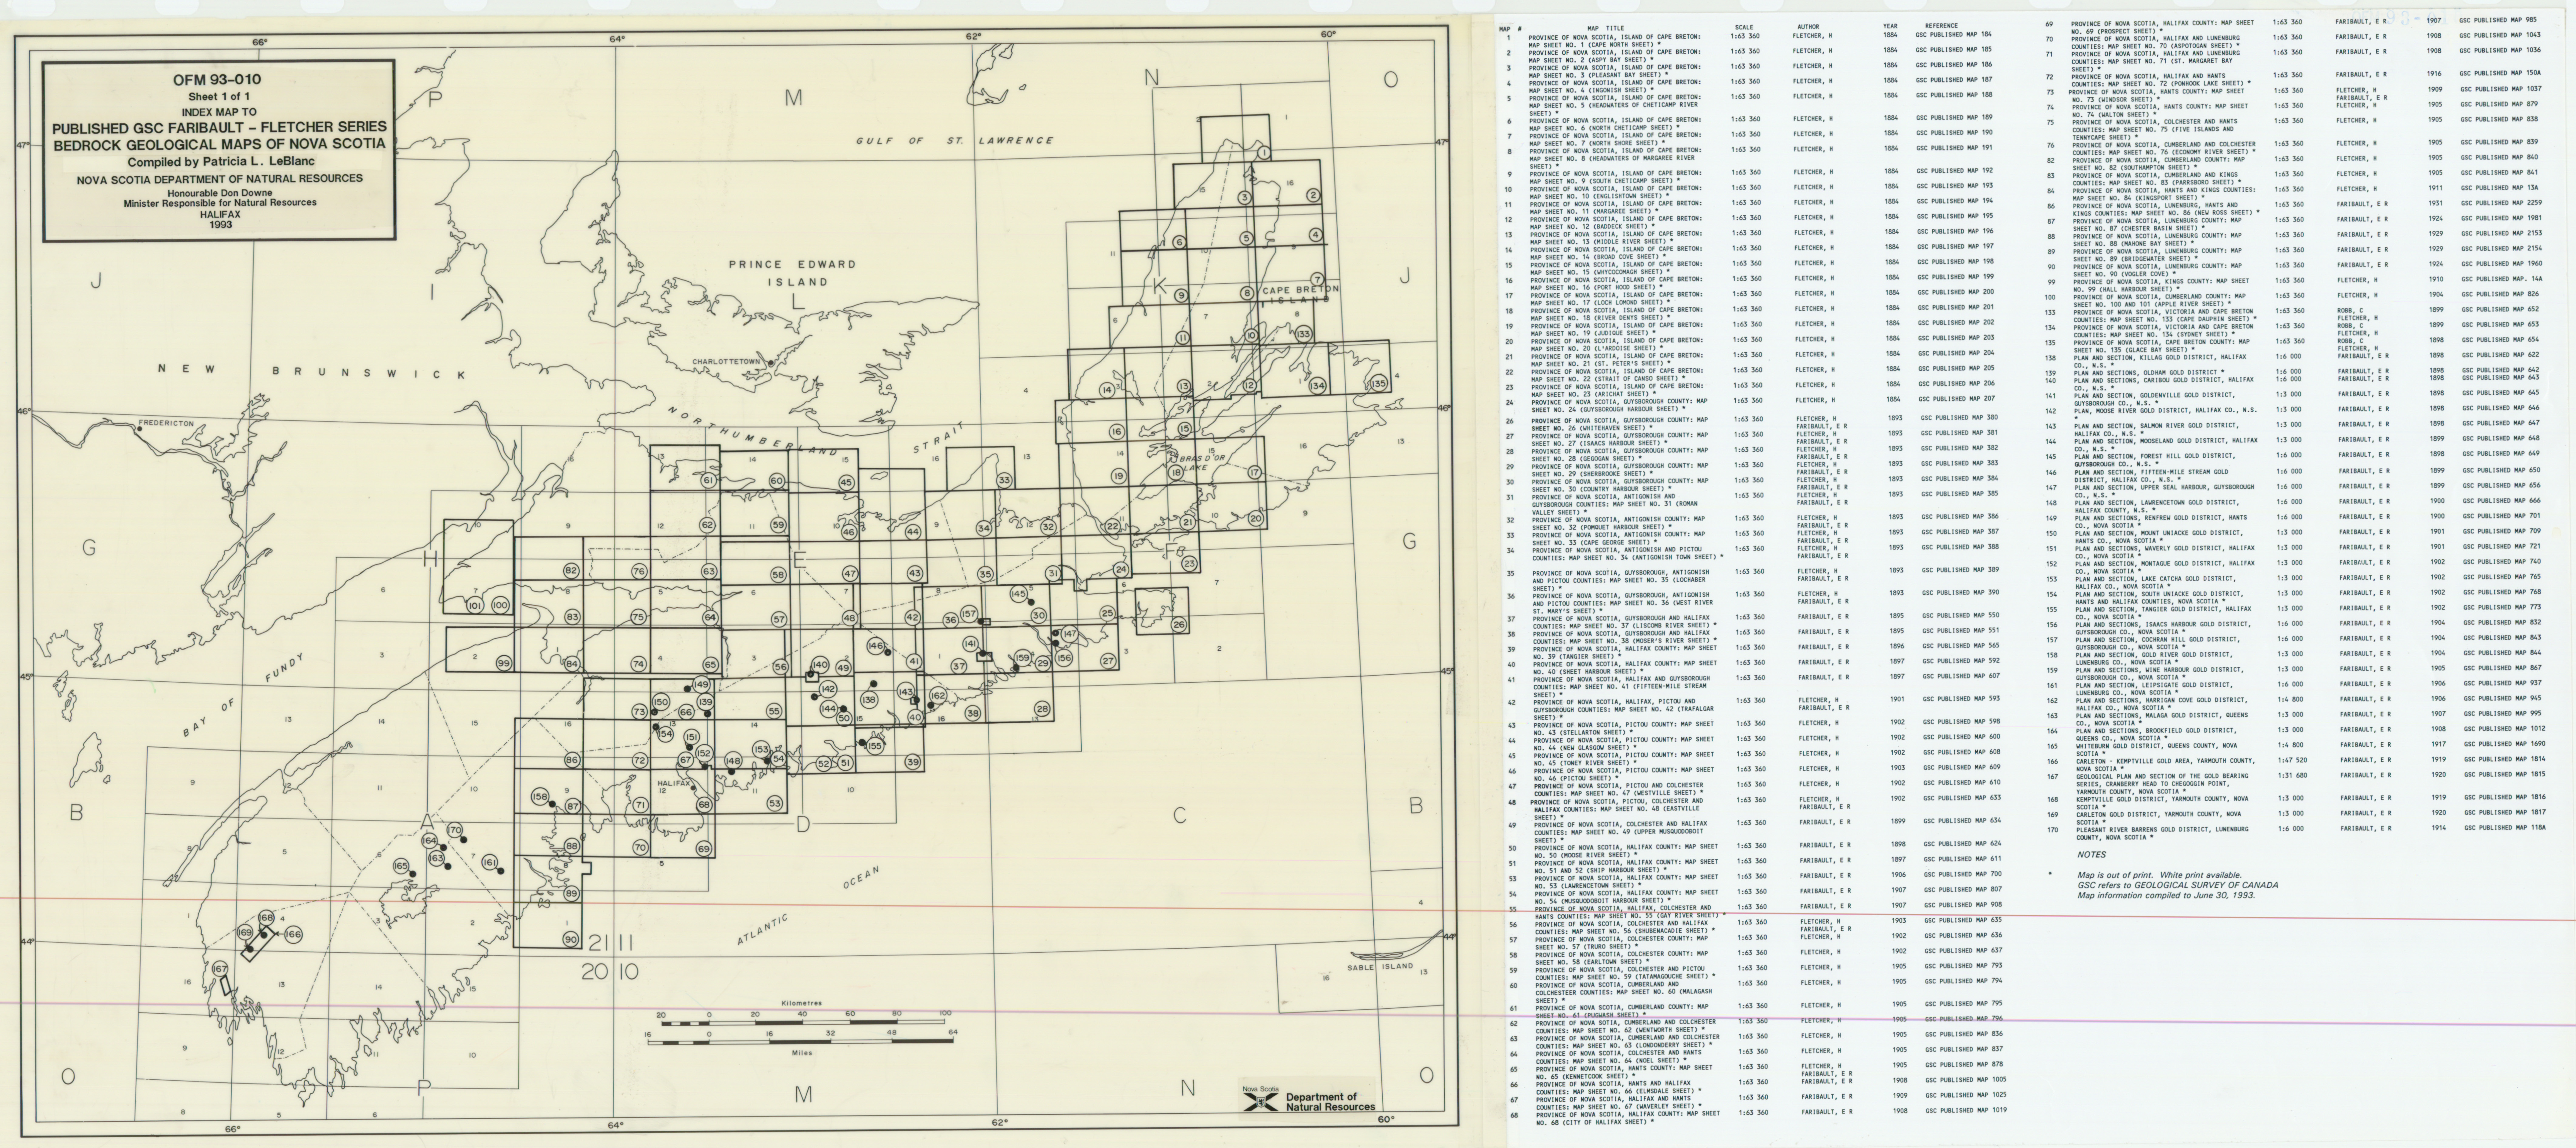 Index Map to Geological Survey of Canada Faribault-Fletcher